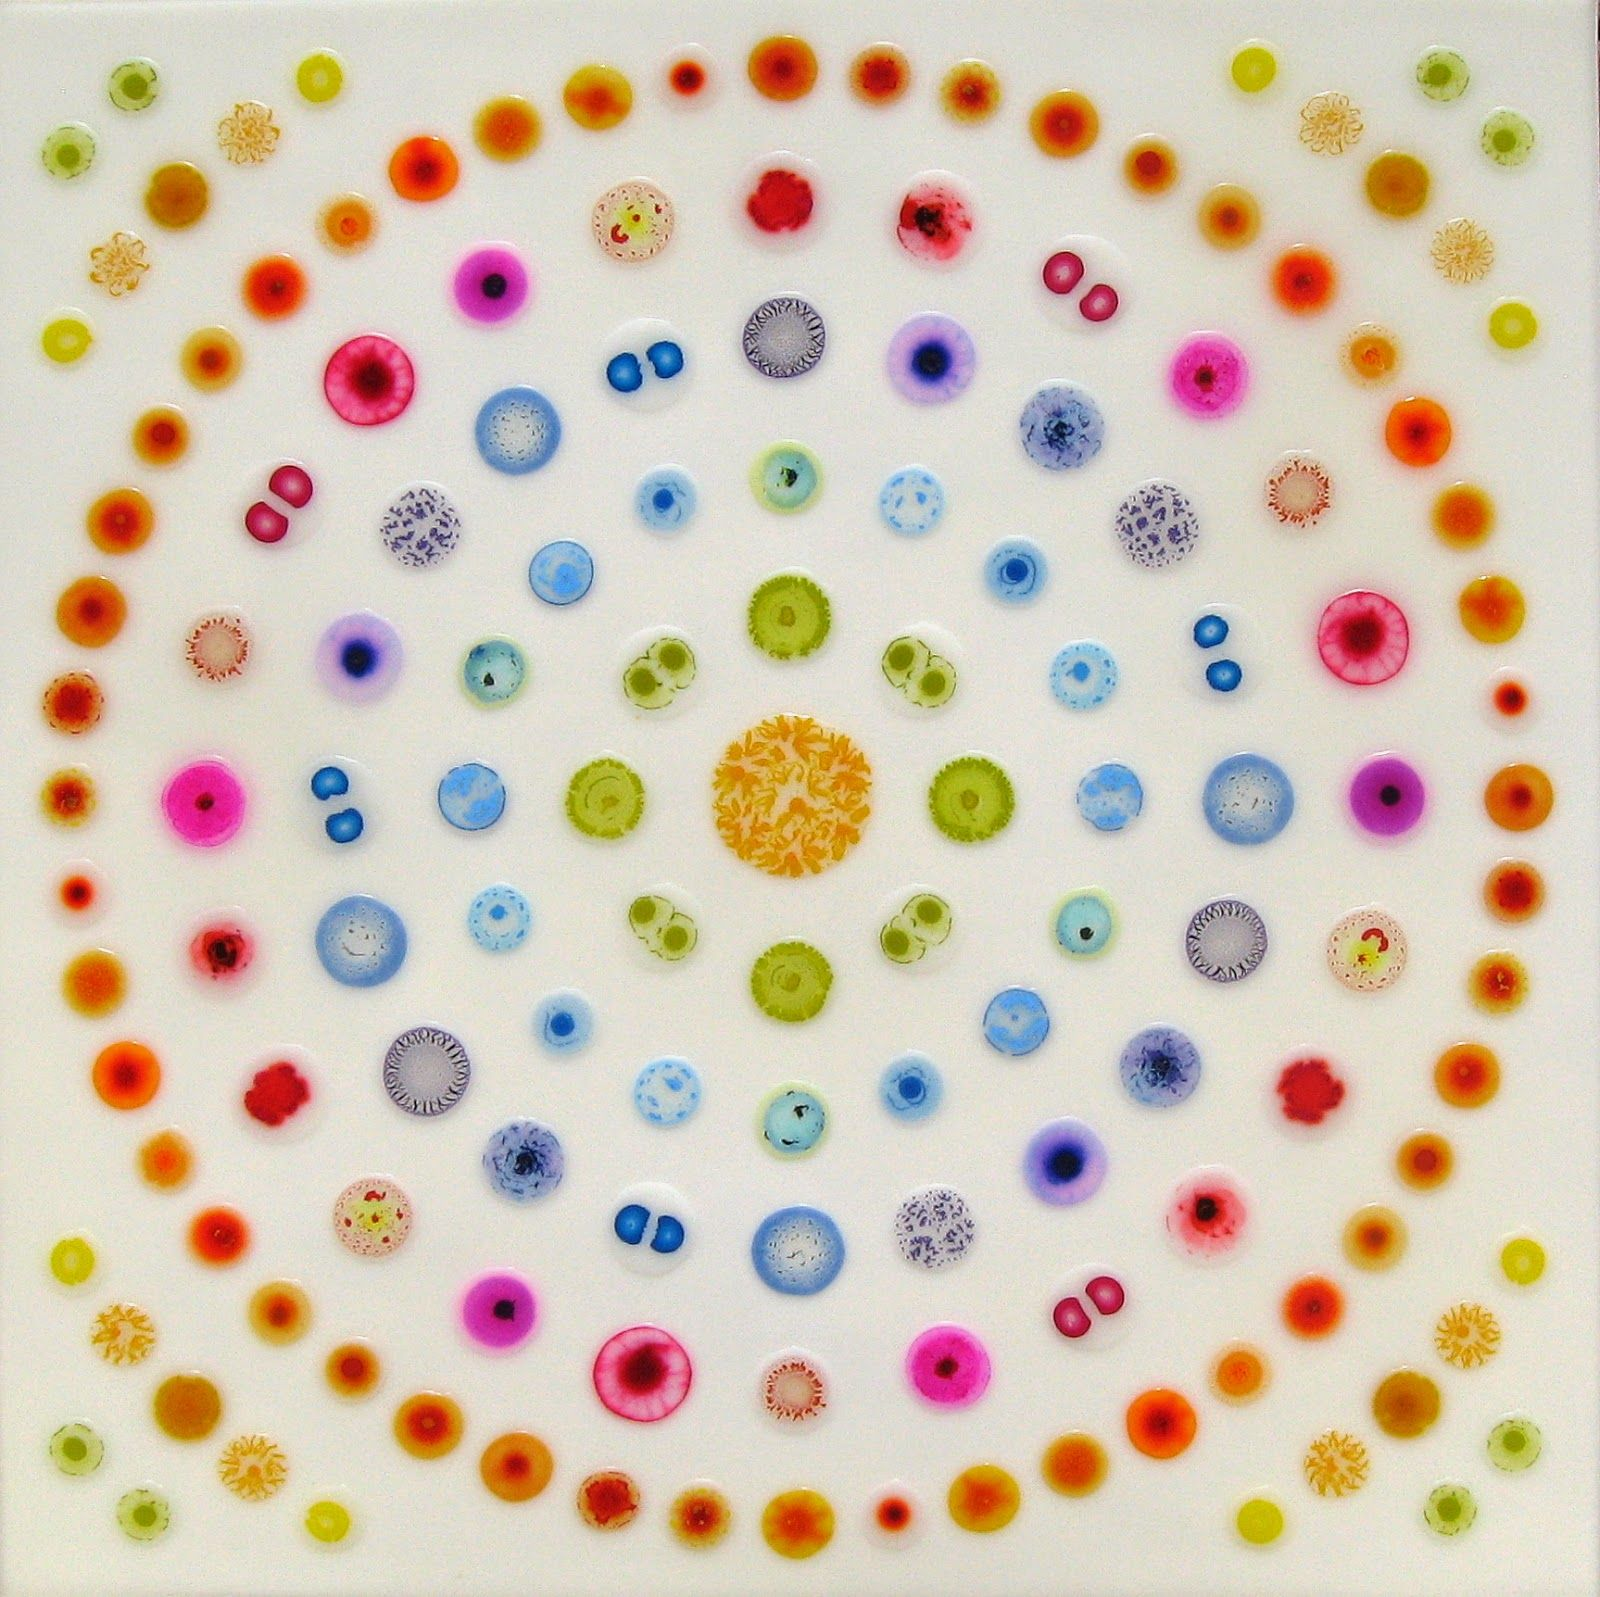 William Loveless Glue Paintings Concentric Strategy